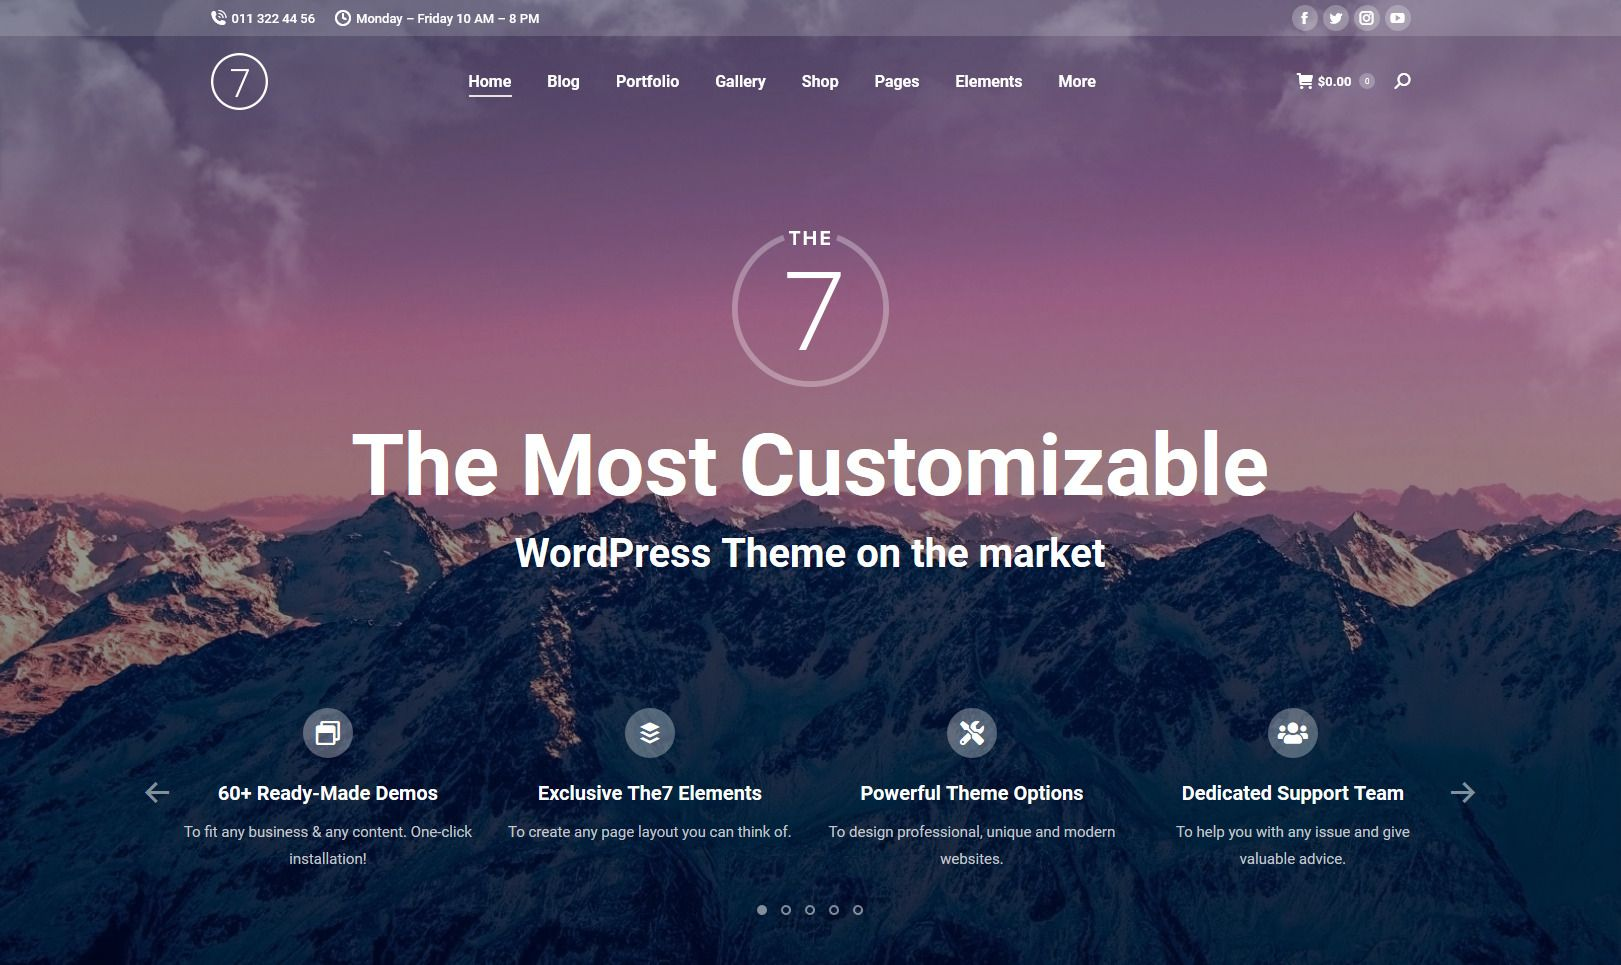 the 7 theme multi-purpose wordpress theme